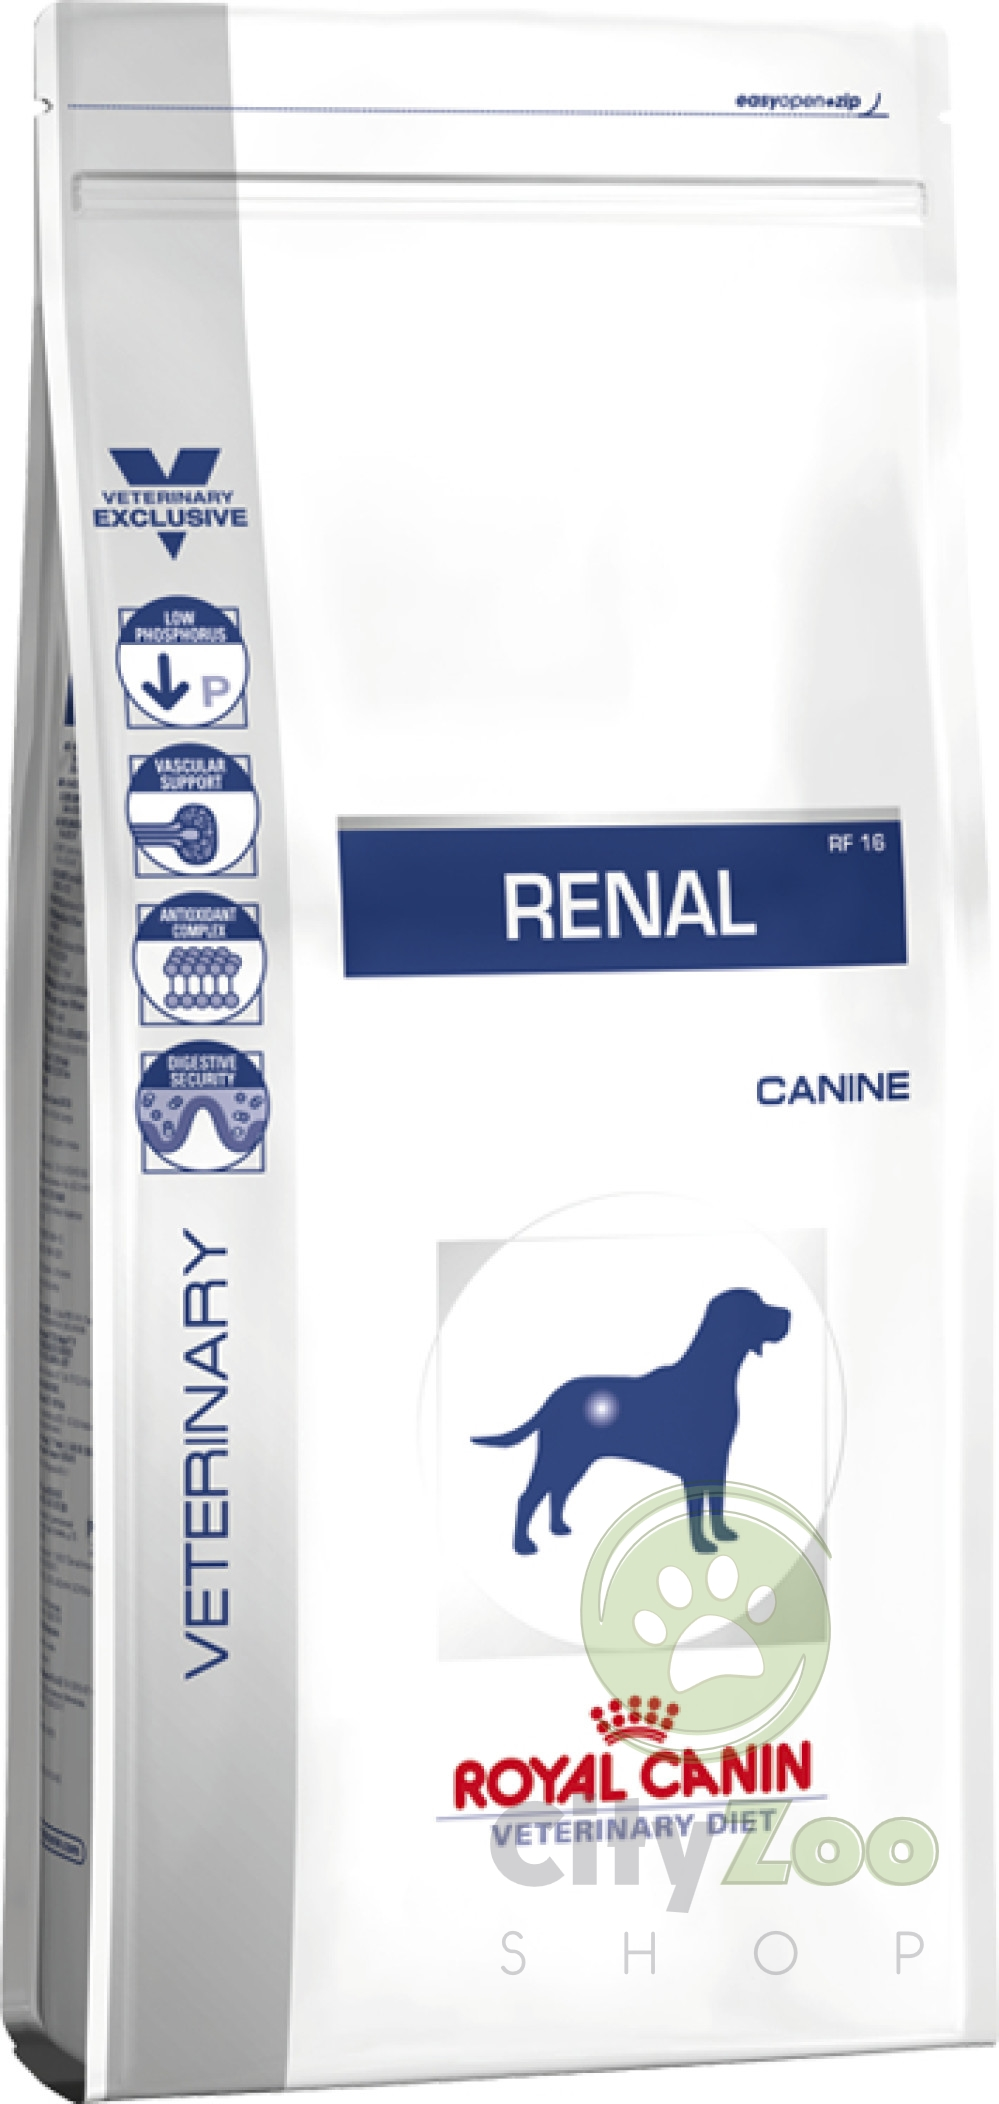 zoo/Royal_Canin_Renal_Canine